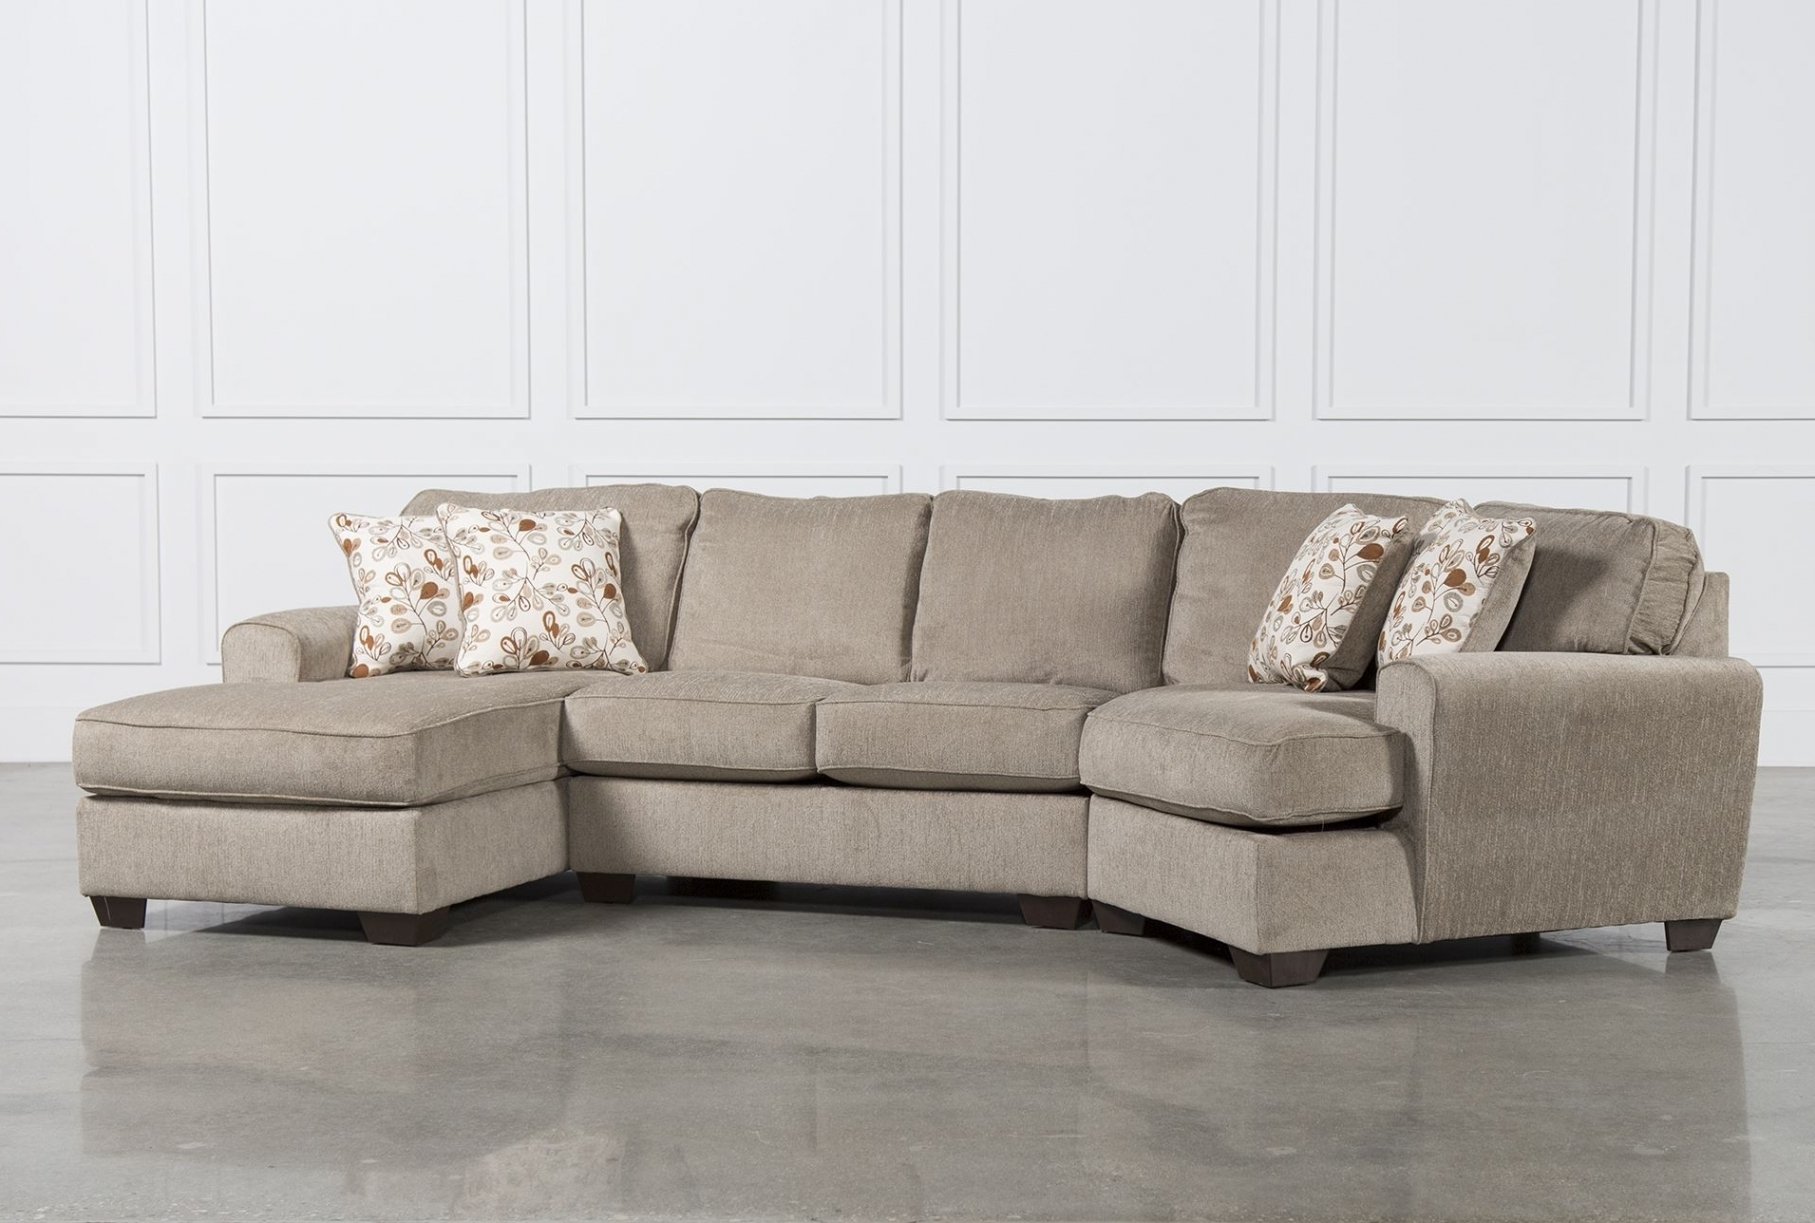 Elegant Angled Sofa Sectional 23 For Sectional Sofas With Regarding Angled Sofa Sectional (Image 5 of 15)